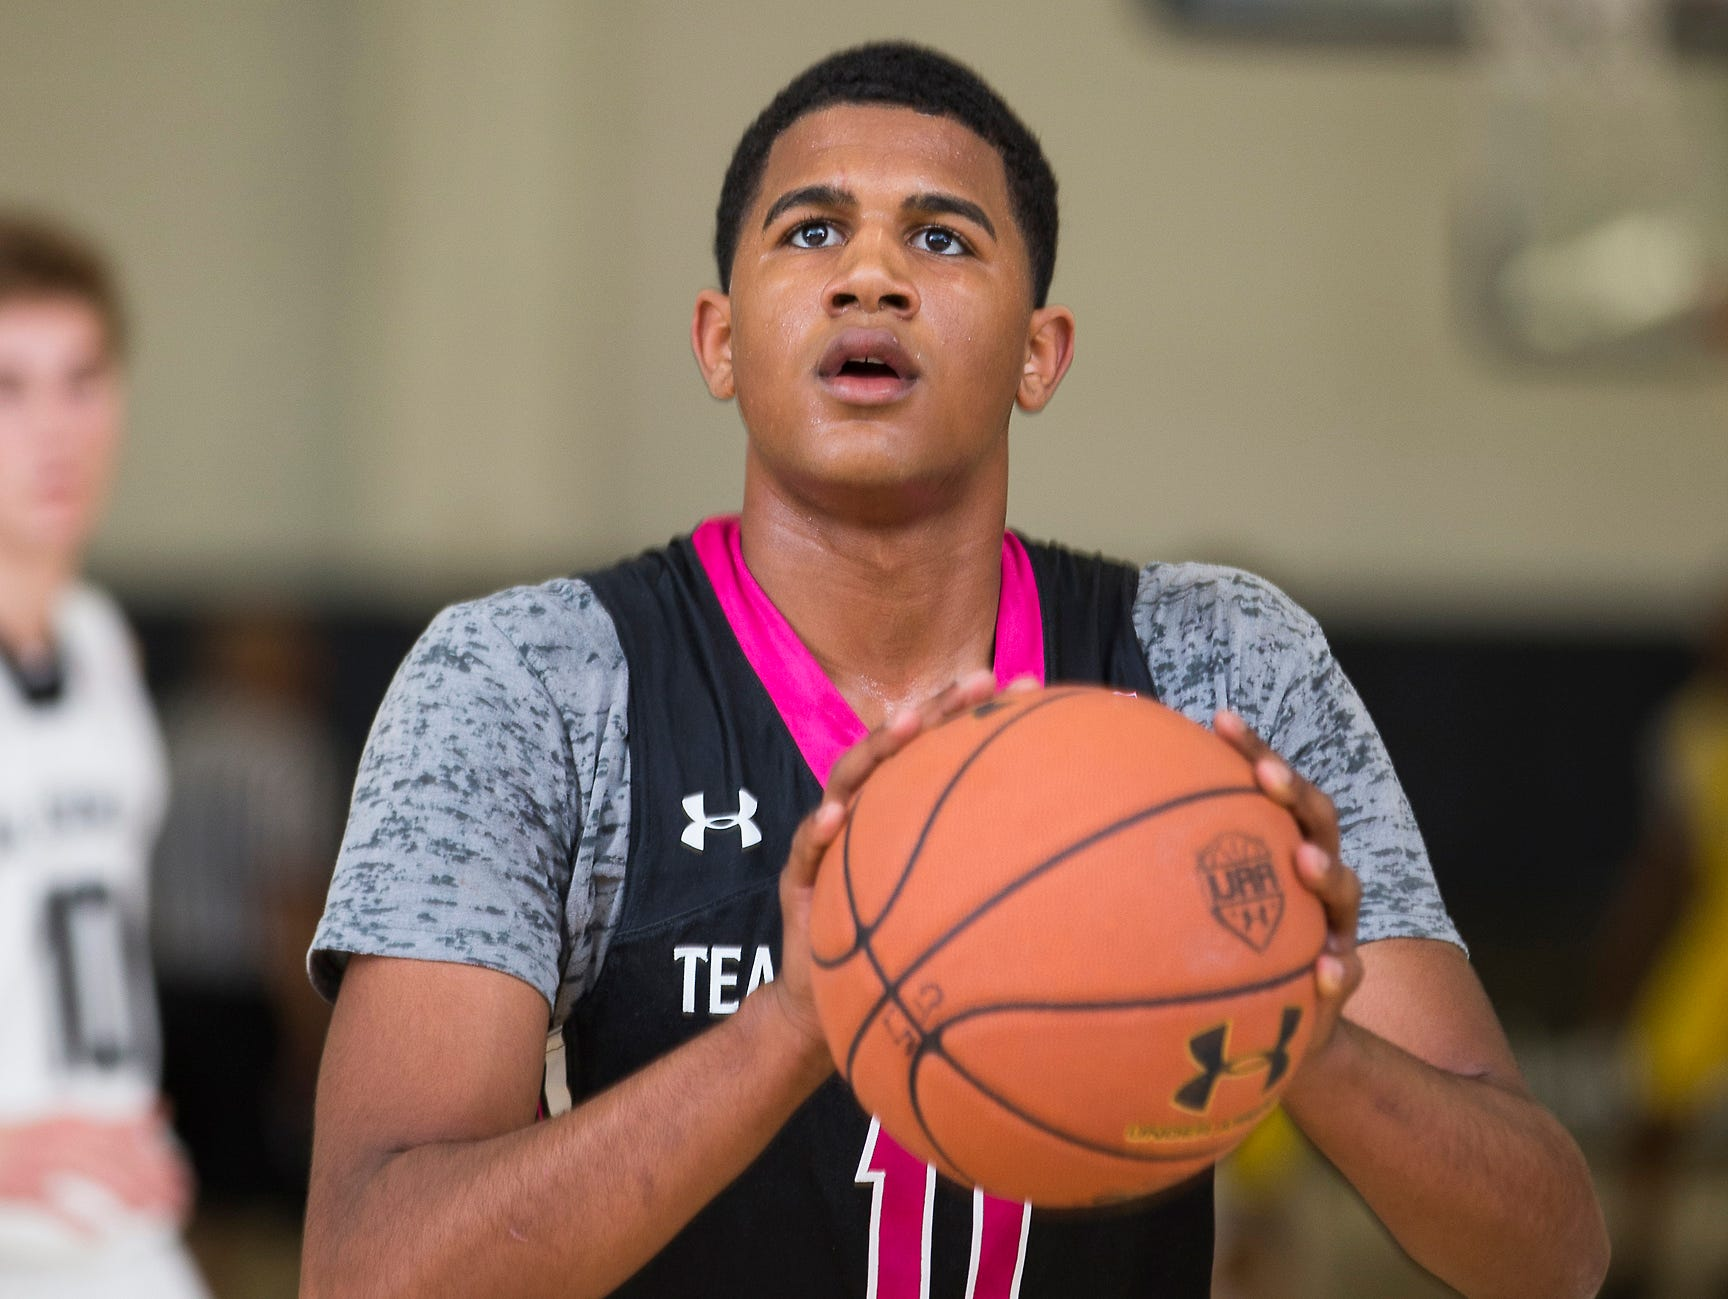 LJ Figueroa at the Under Armour Association's AAU session in New York.